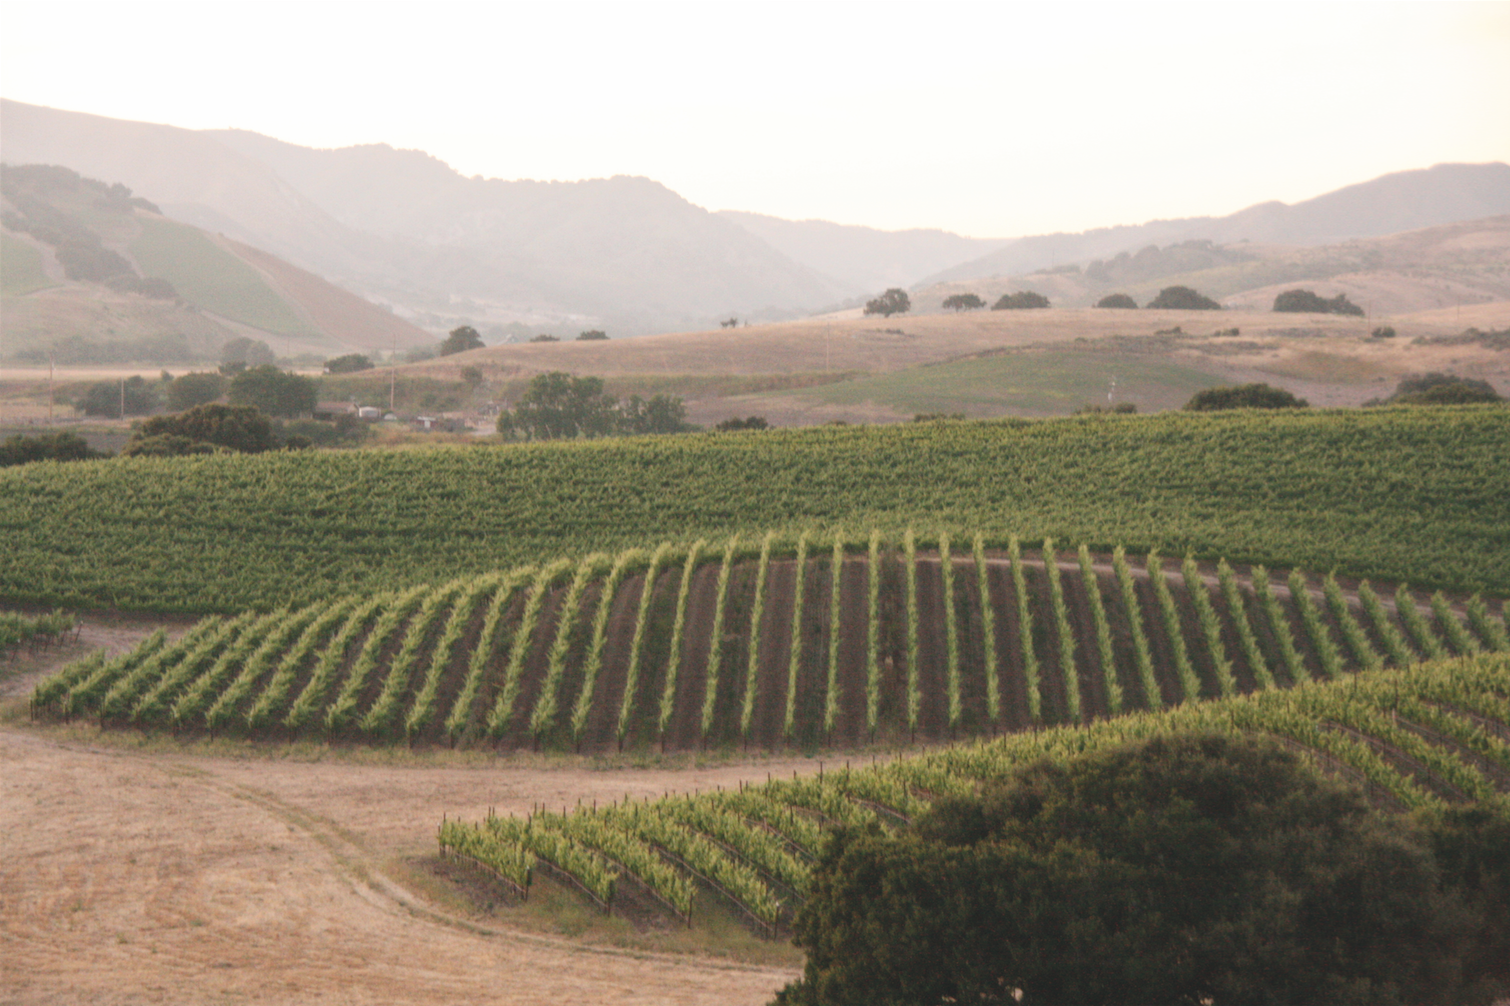 The expert contouring of Ampelos vineyards maximizes the potential terroir of the region.